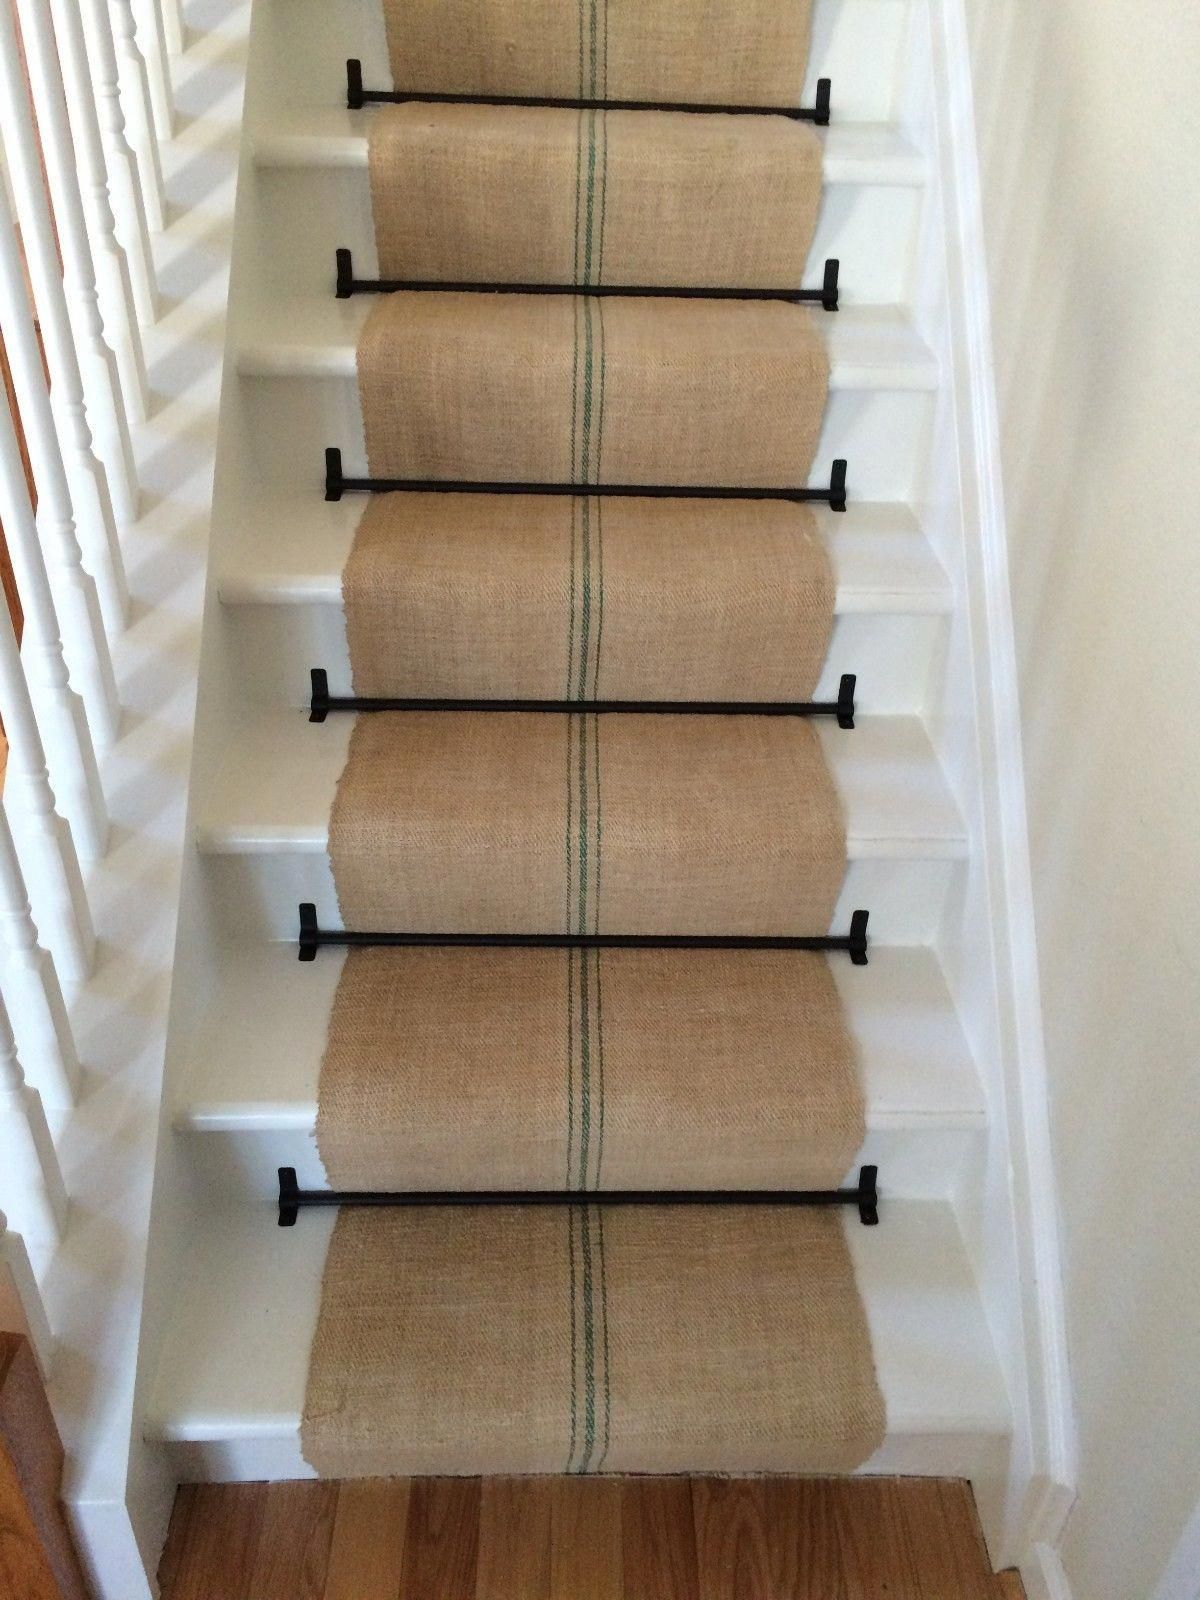 Best Carpet For Boat Runners Carpetrunners2ftwide Wheretocarpetrunnersforstairs